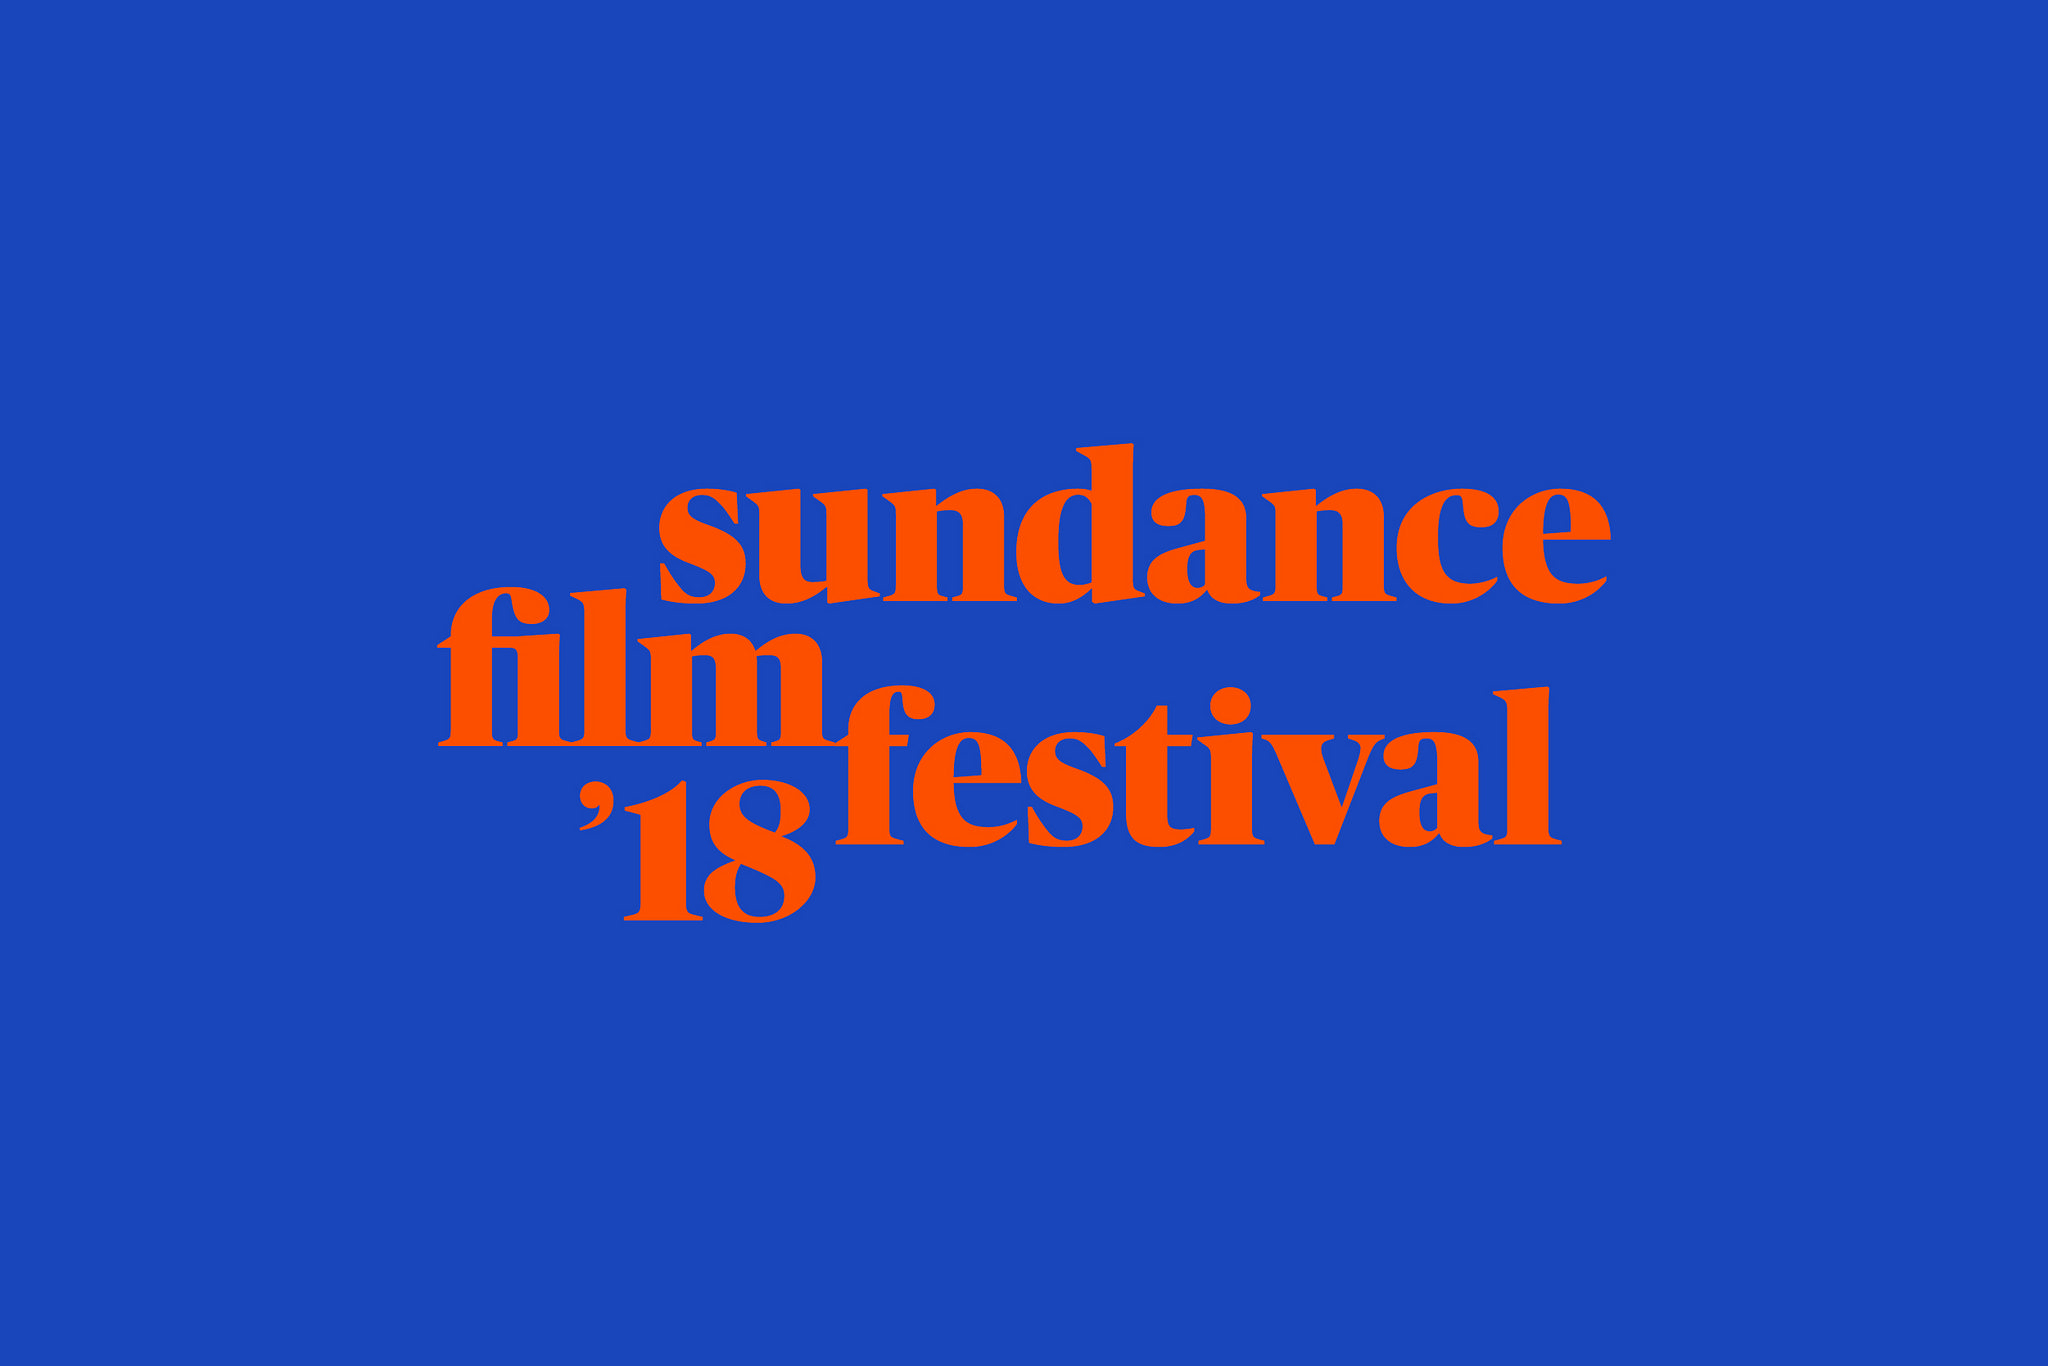 Sundance Film Festival 2018 Live Stream from Cinema Cafe Featuring Steve James and Lauren Greenfield